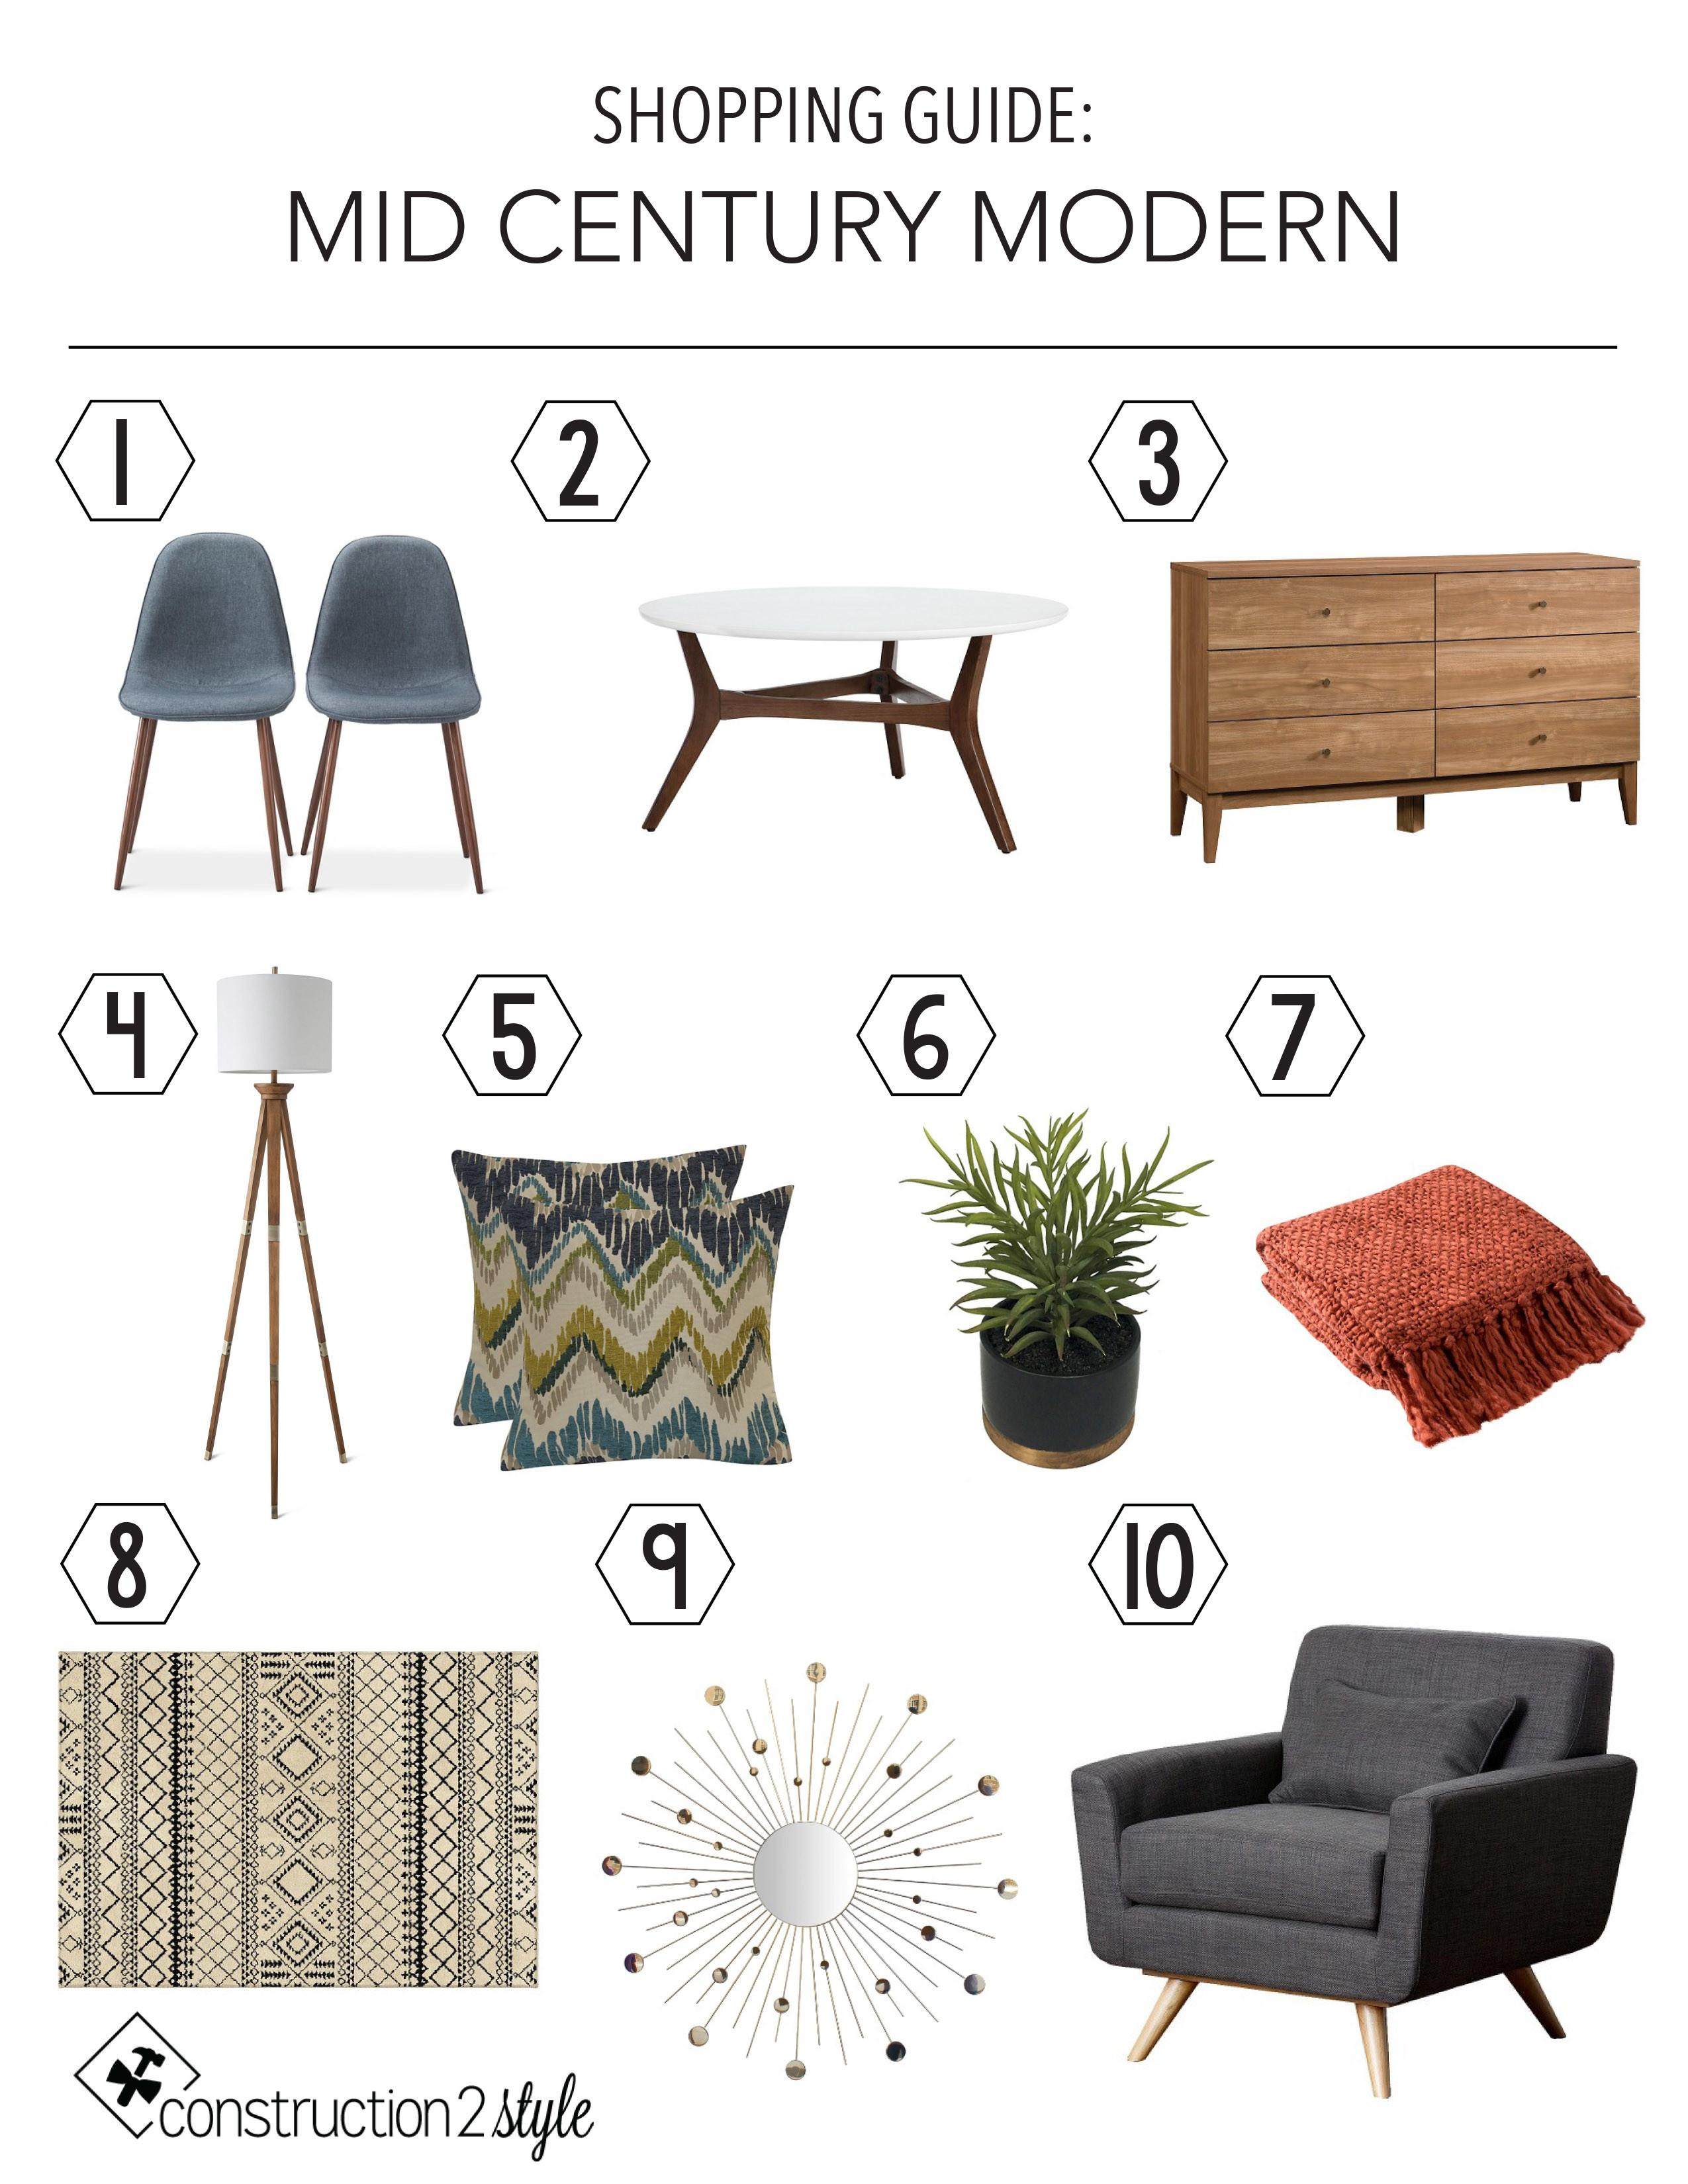 Mid Century Modern Shopping Guide Construction2style